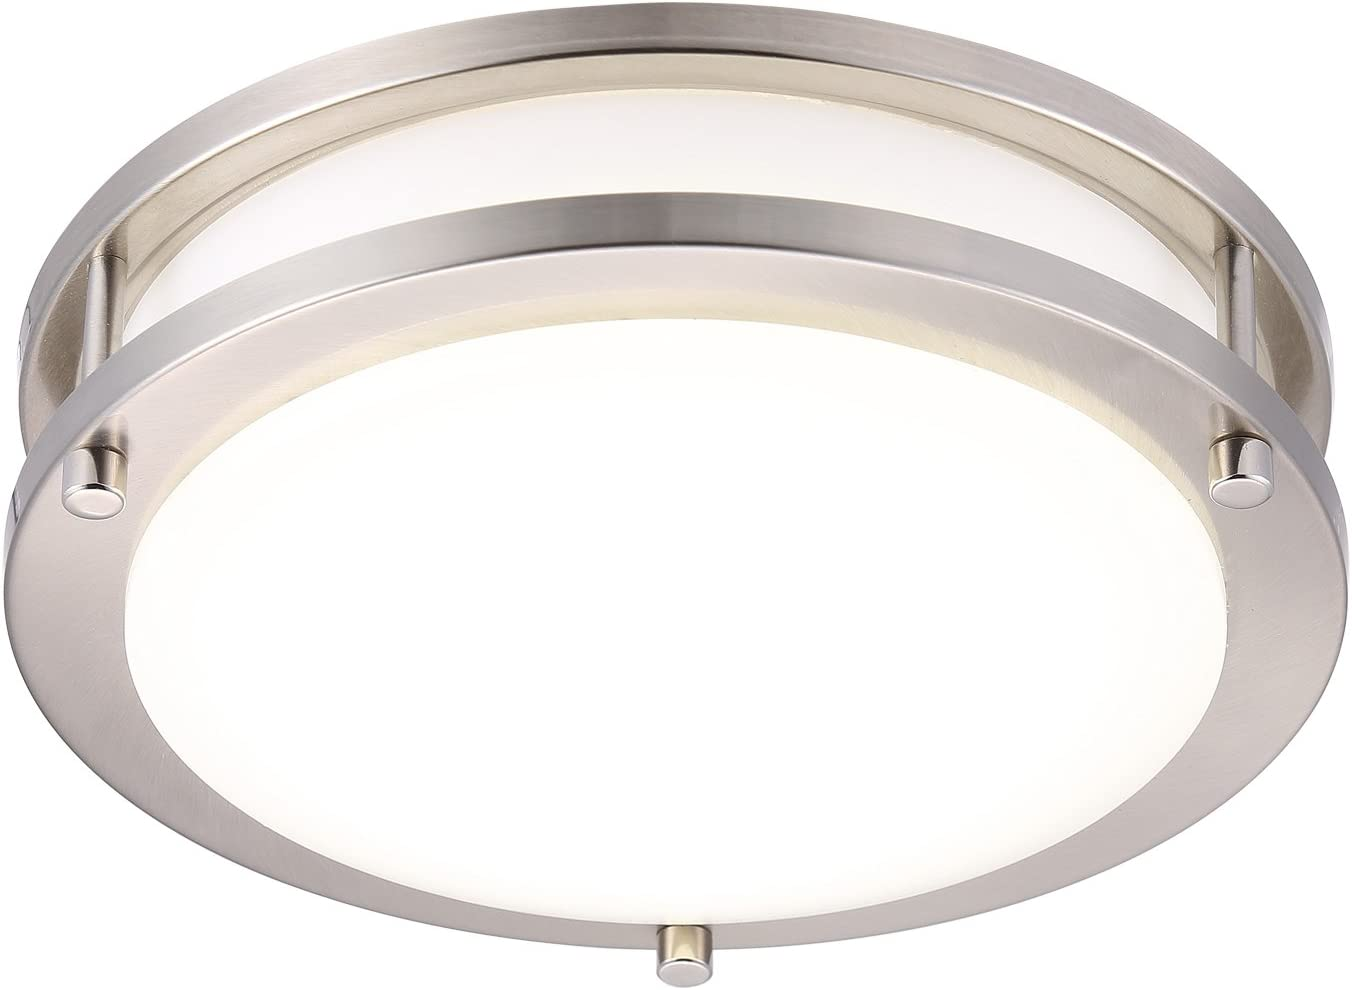 Cloudy Bay LED Flush Mount Ceiling Light,10 inch